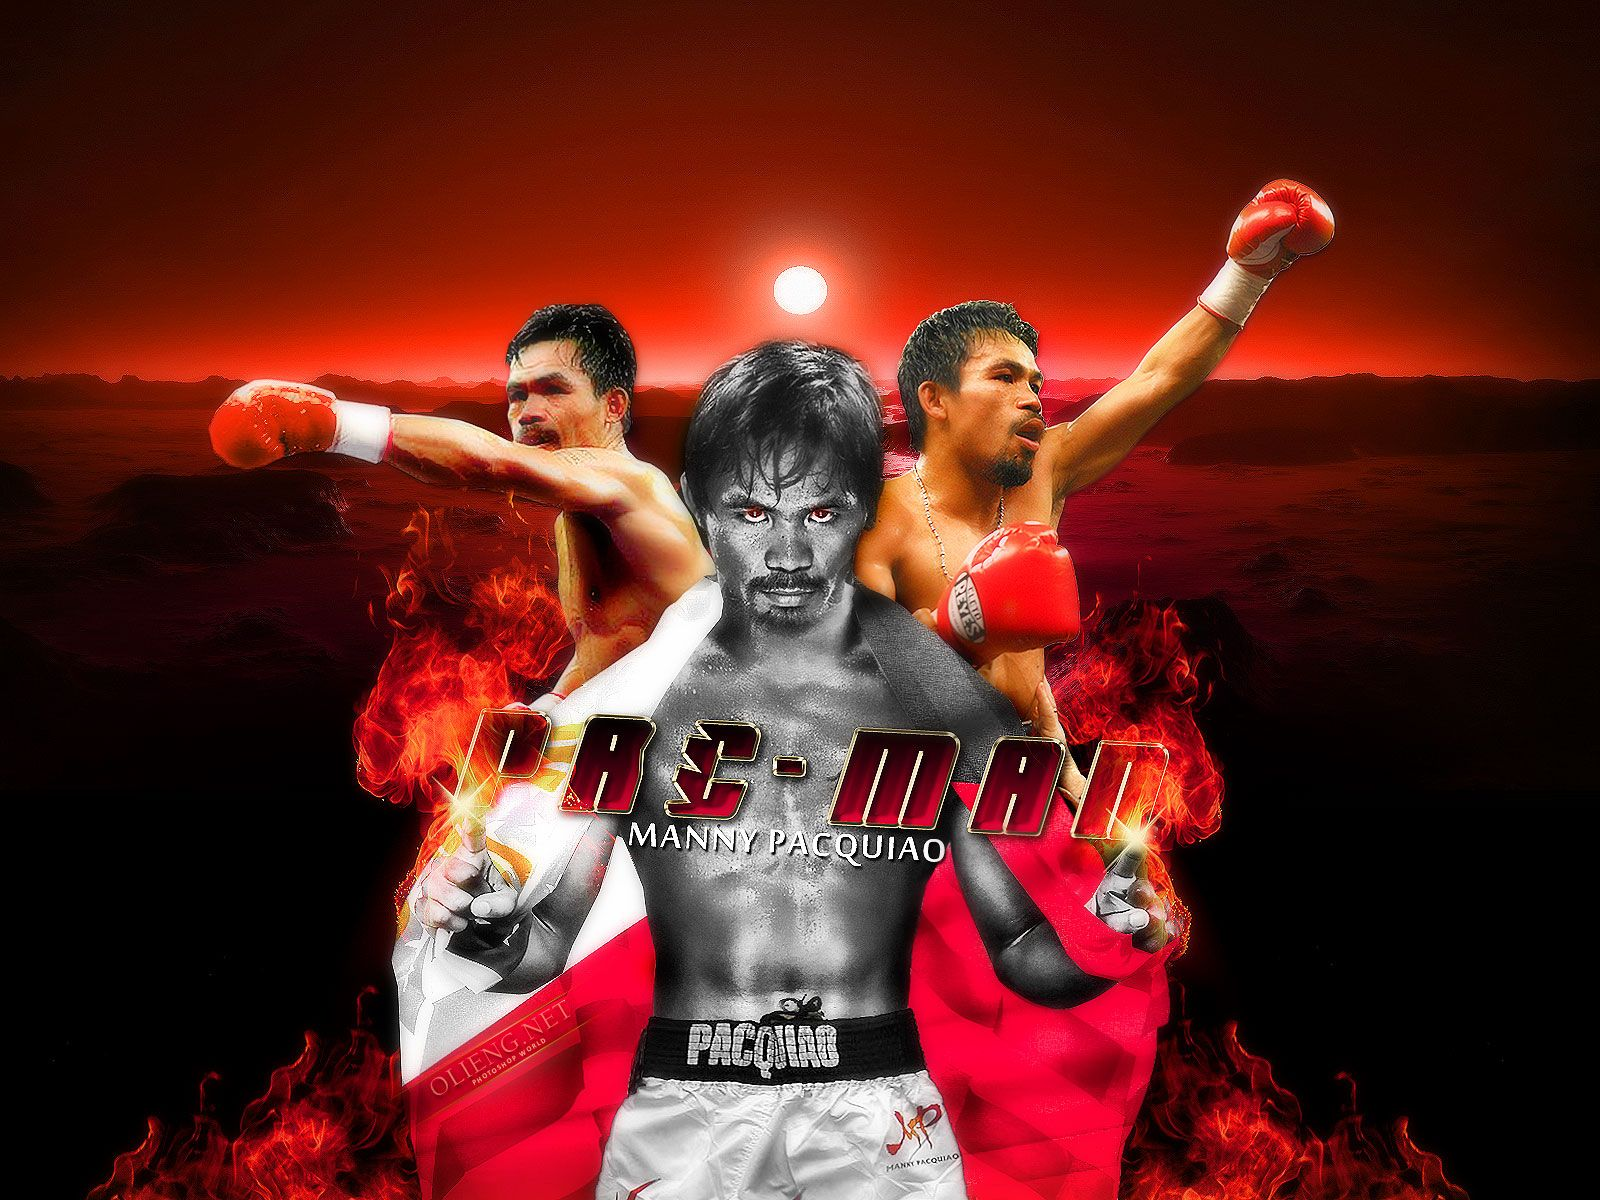 Manny Pacquiao Back in Action